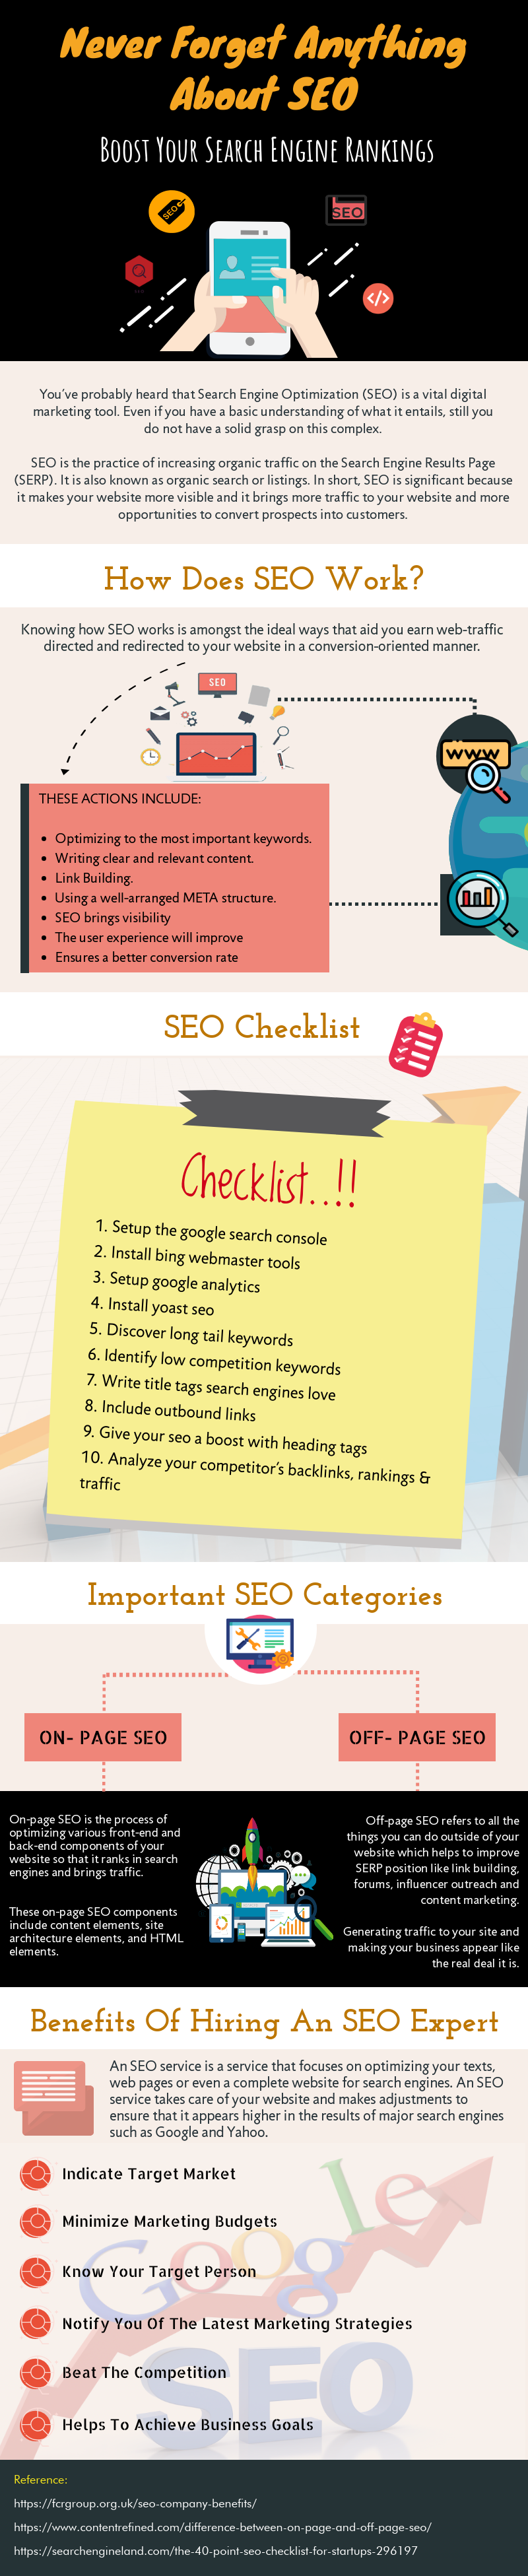 Best Seo Tools To Monitor Site